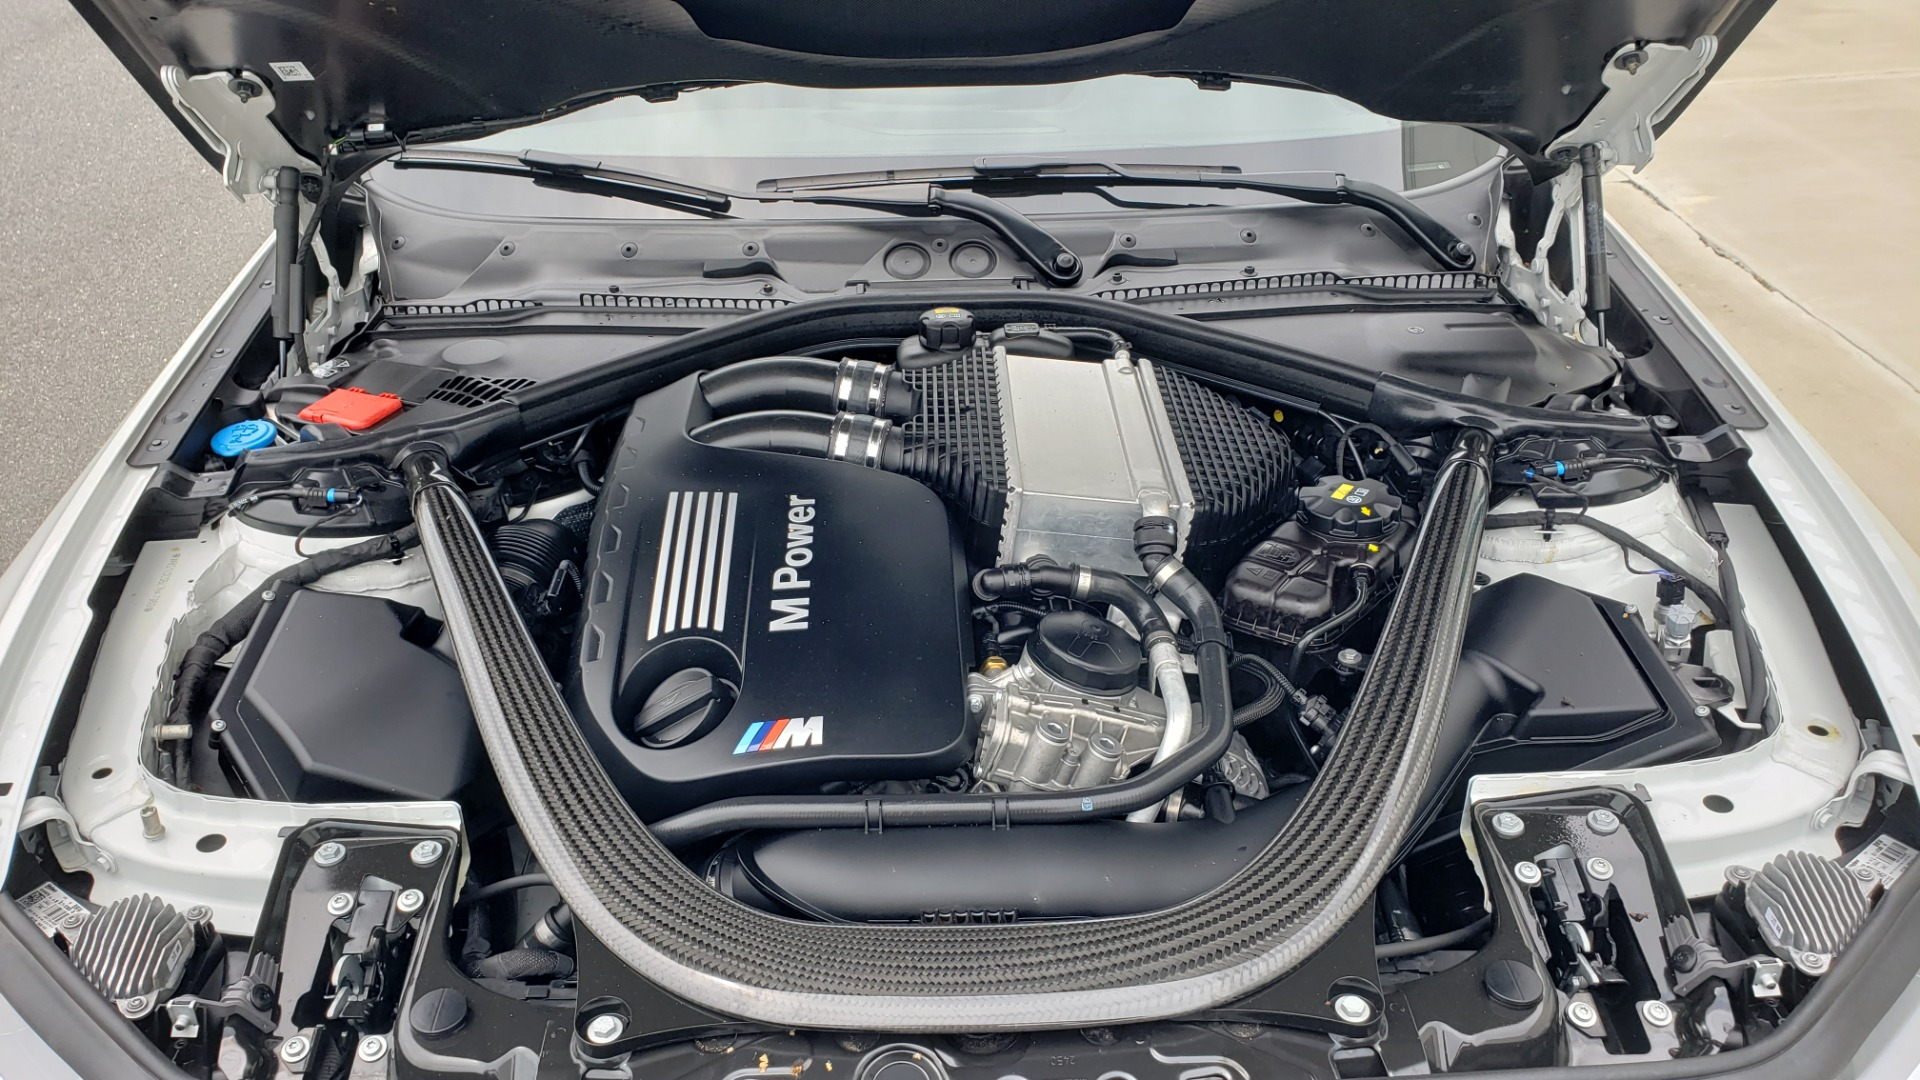 Used 2020 BMW M2 CS COMPETITION 405HP / COUPE / MANUAL / NAV / H/K SOUND / REARVIEW for sale $105,995 at Formula Imports in Charlotte NC 28227 18